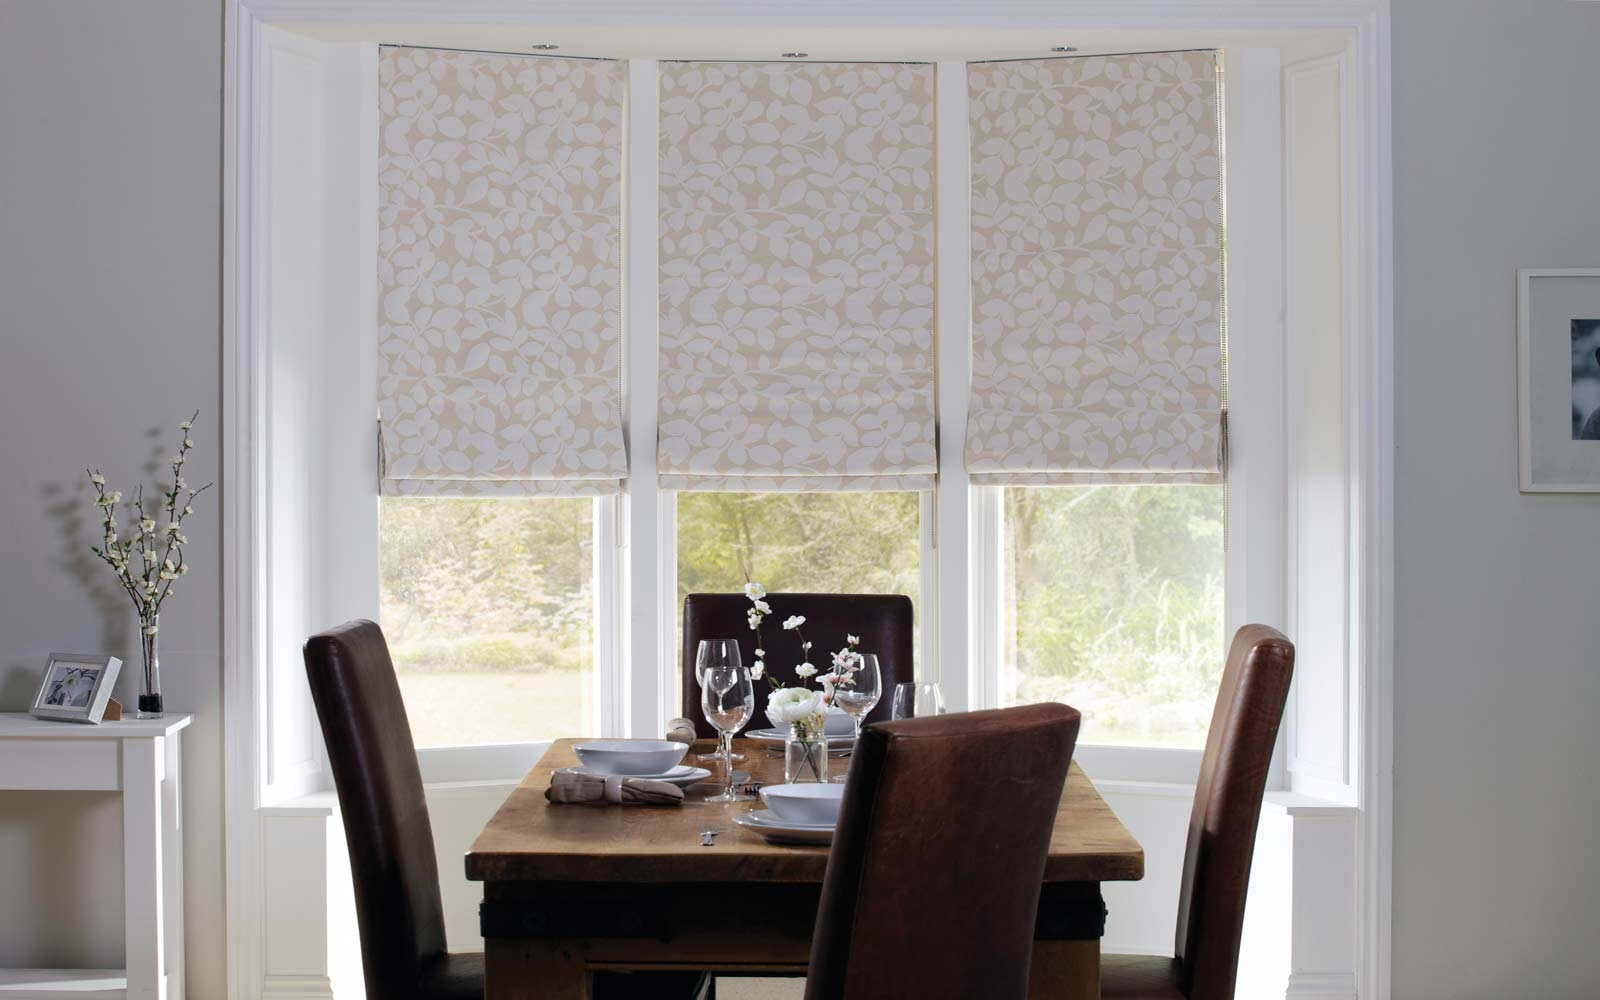 Roman Blinds Surrey Blinds Shutters Within Black And White Roman Blinds (Image 14 of 15)